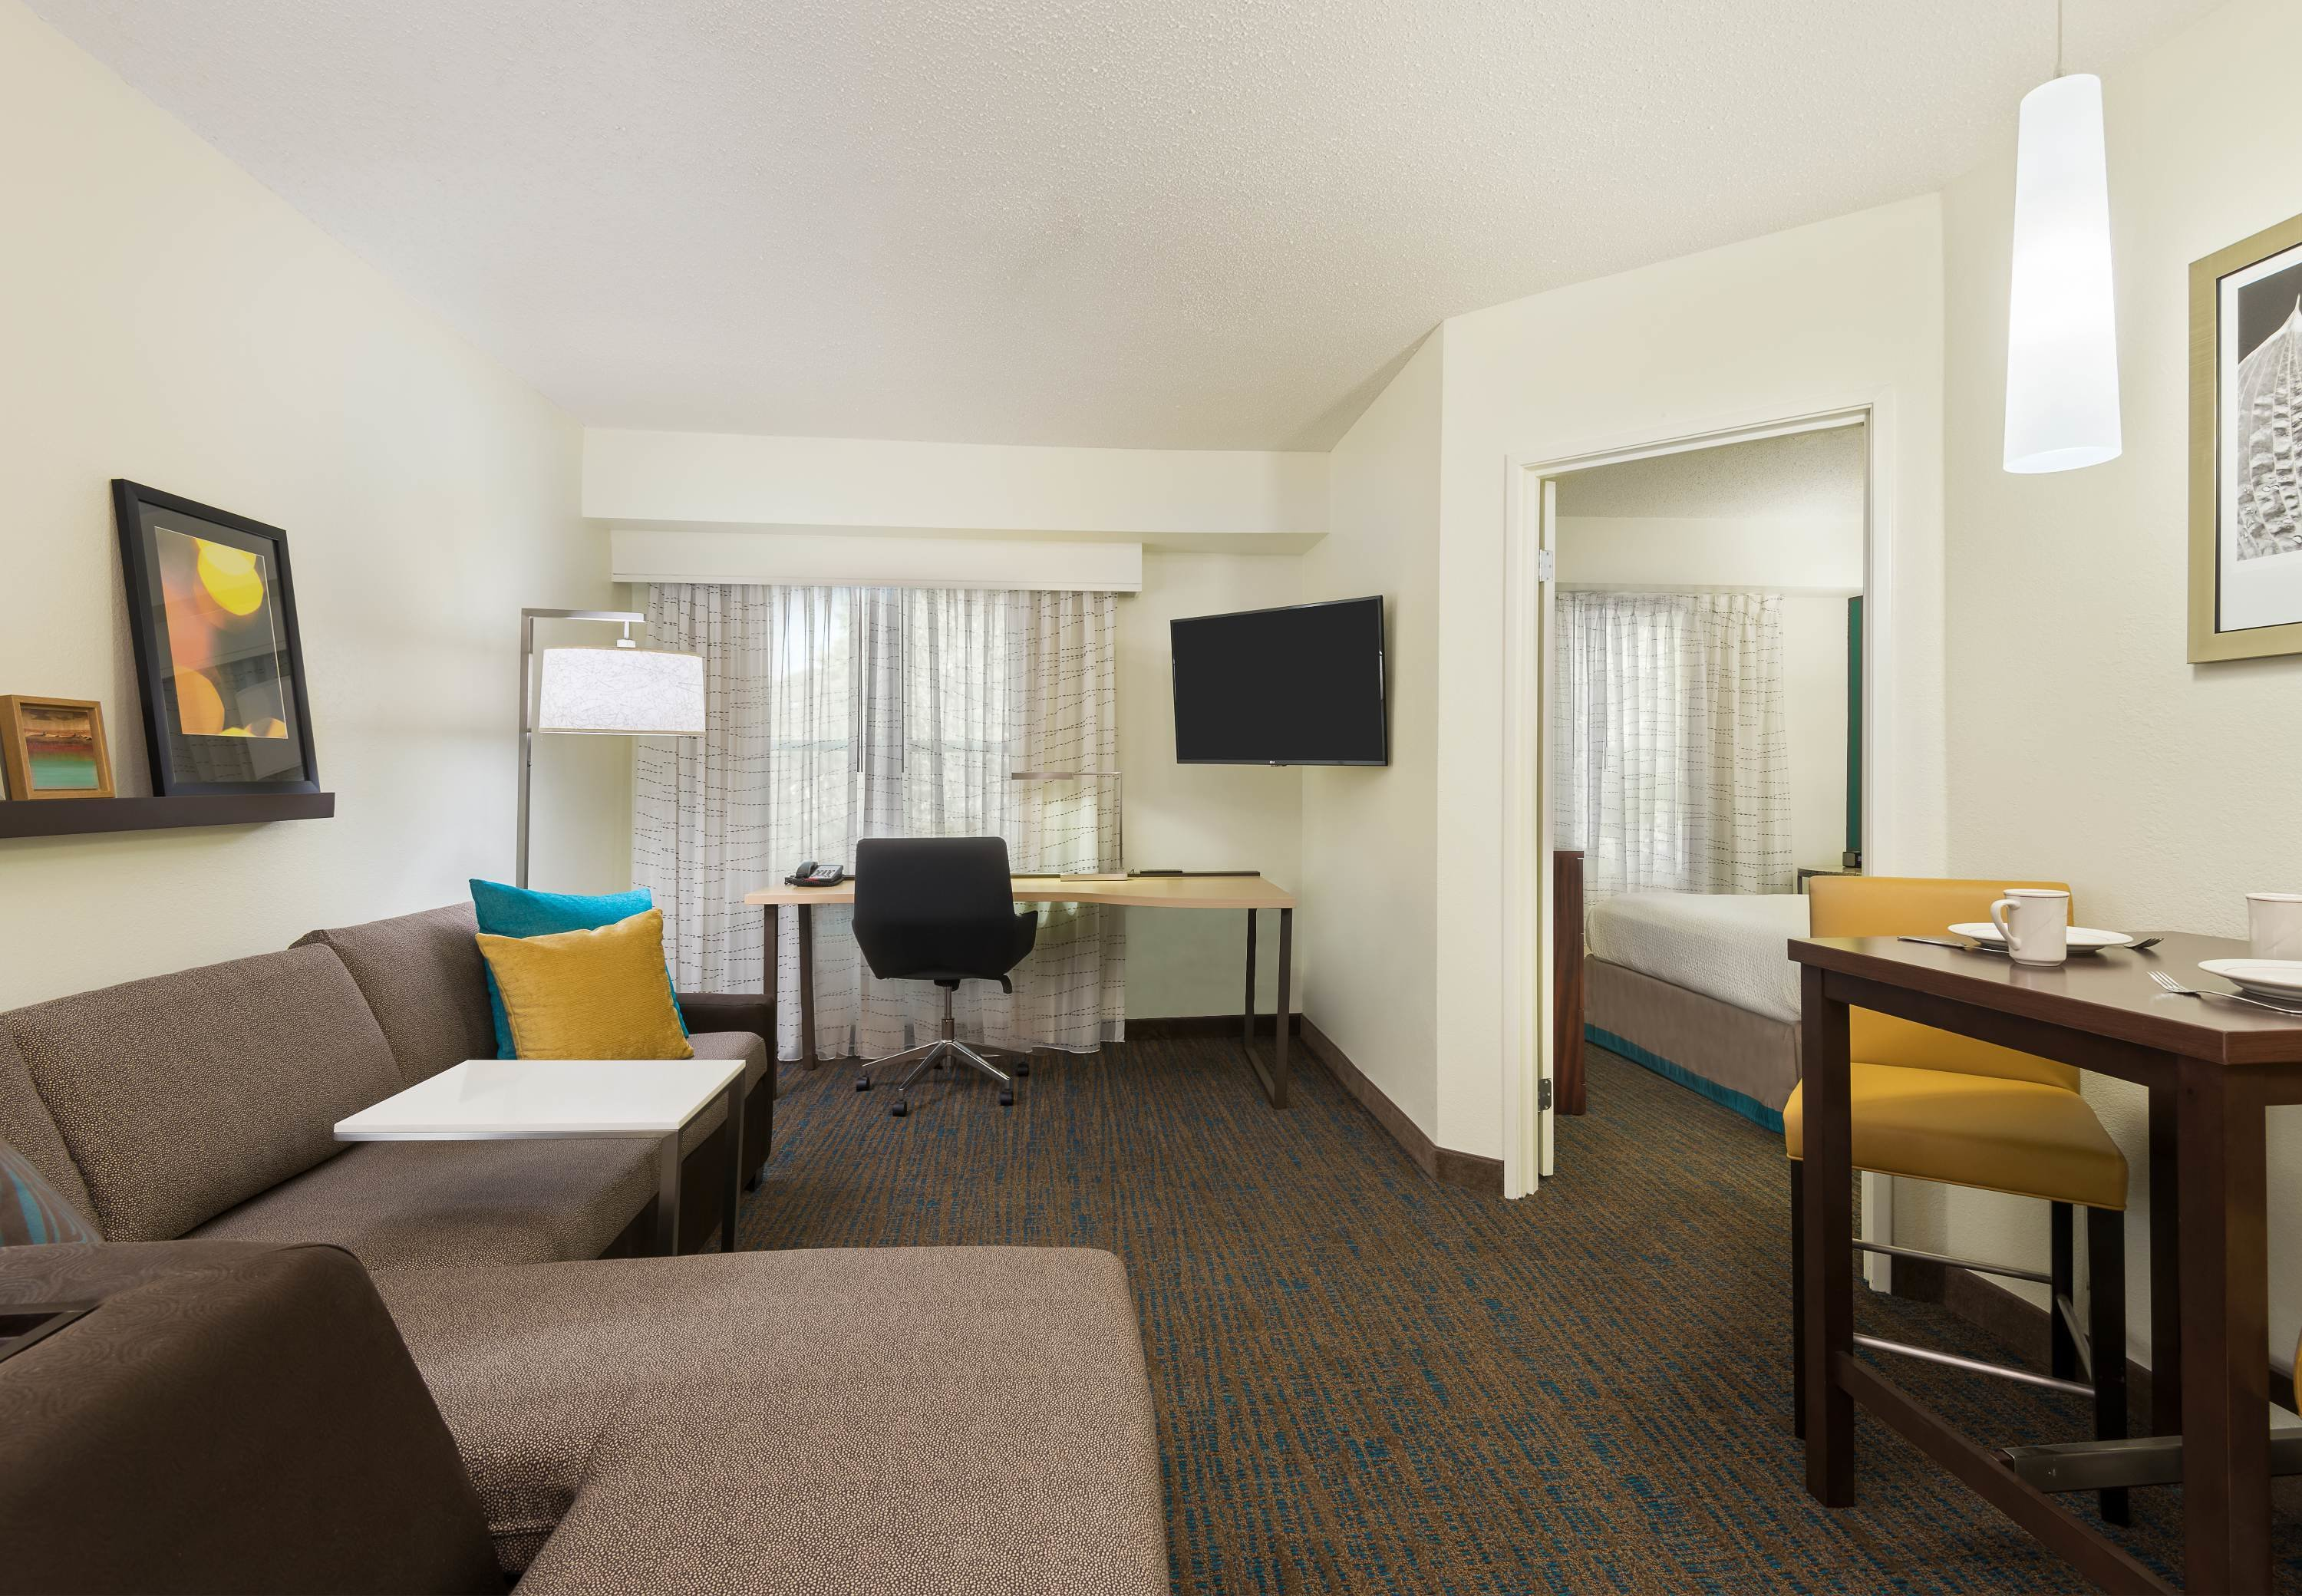 Best Extended Stay Hotels Savannah Ga Residence Inn Savannah With Pictures